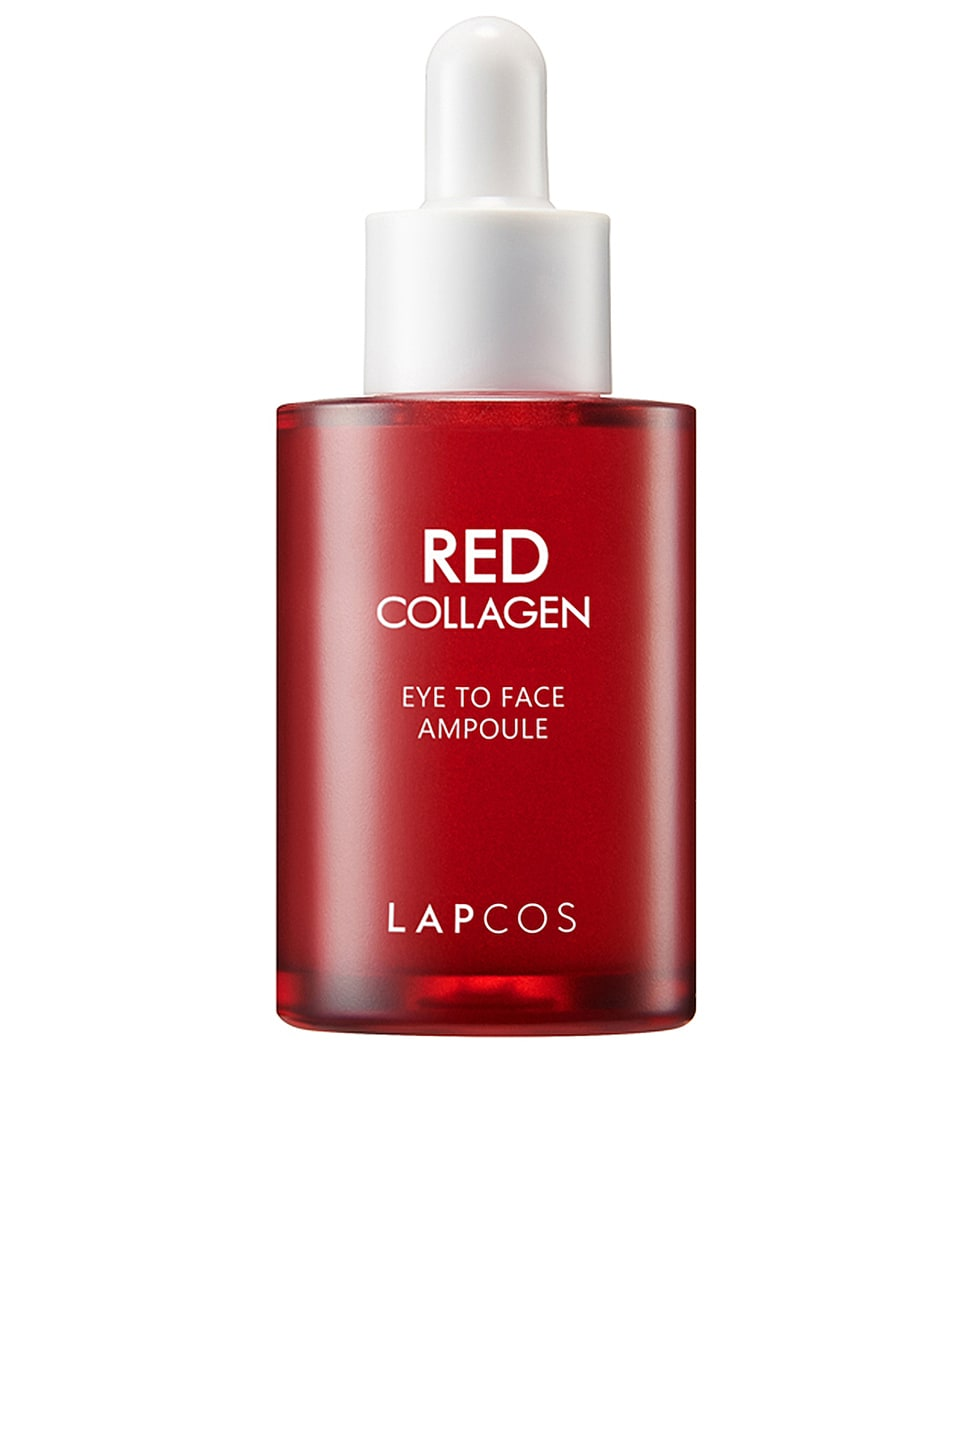 LAPCOS Red Collagen Eye To Face Ampoule